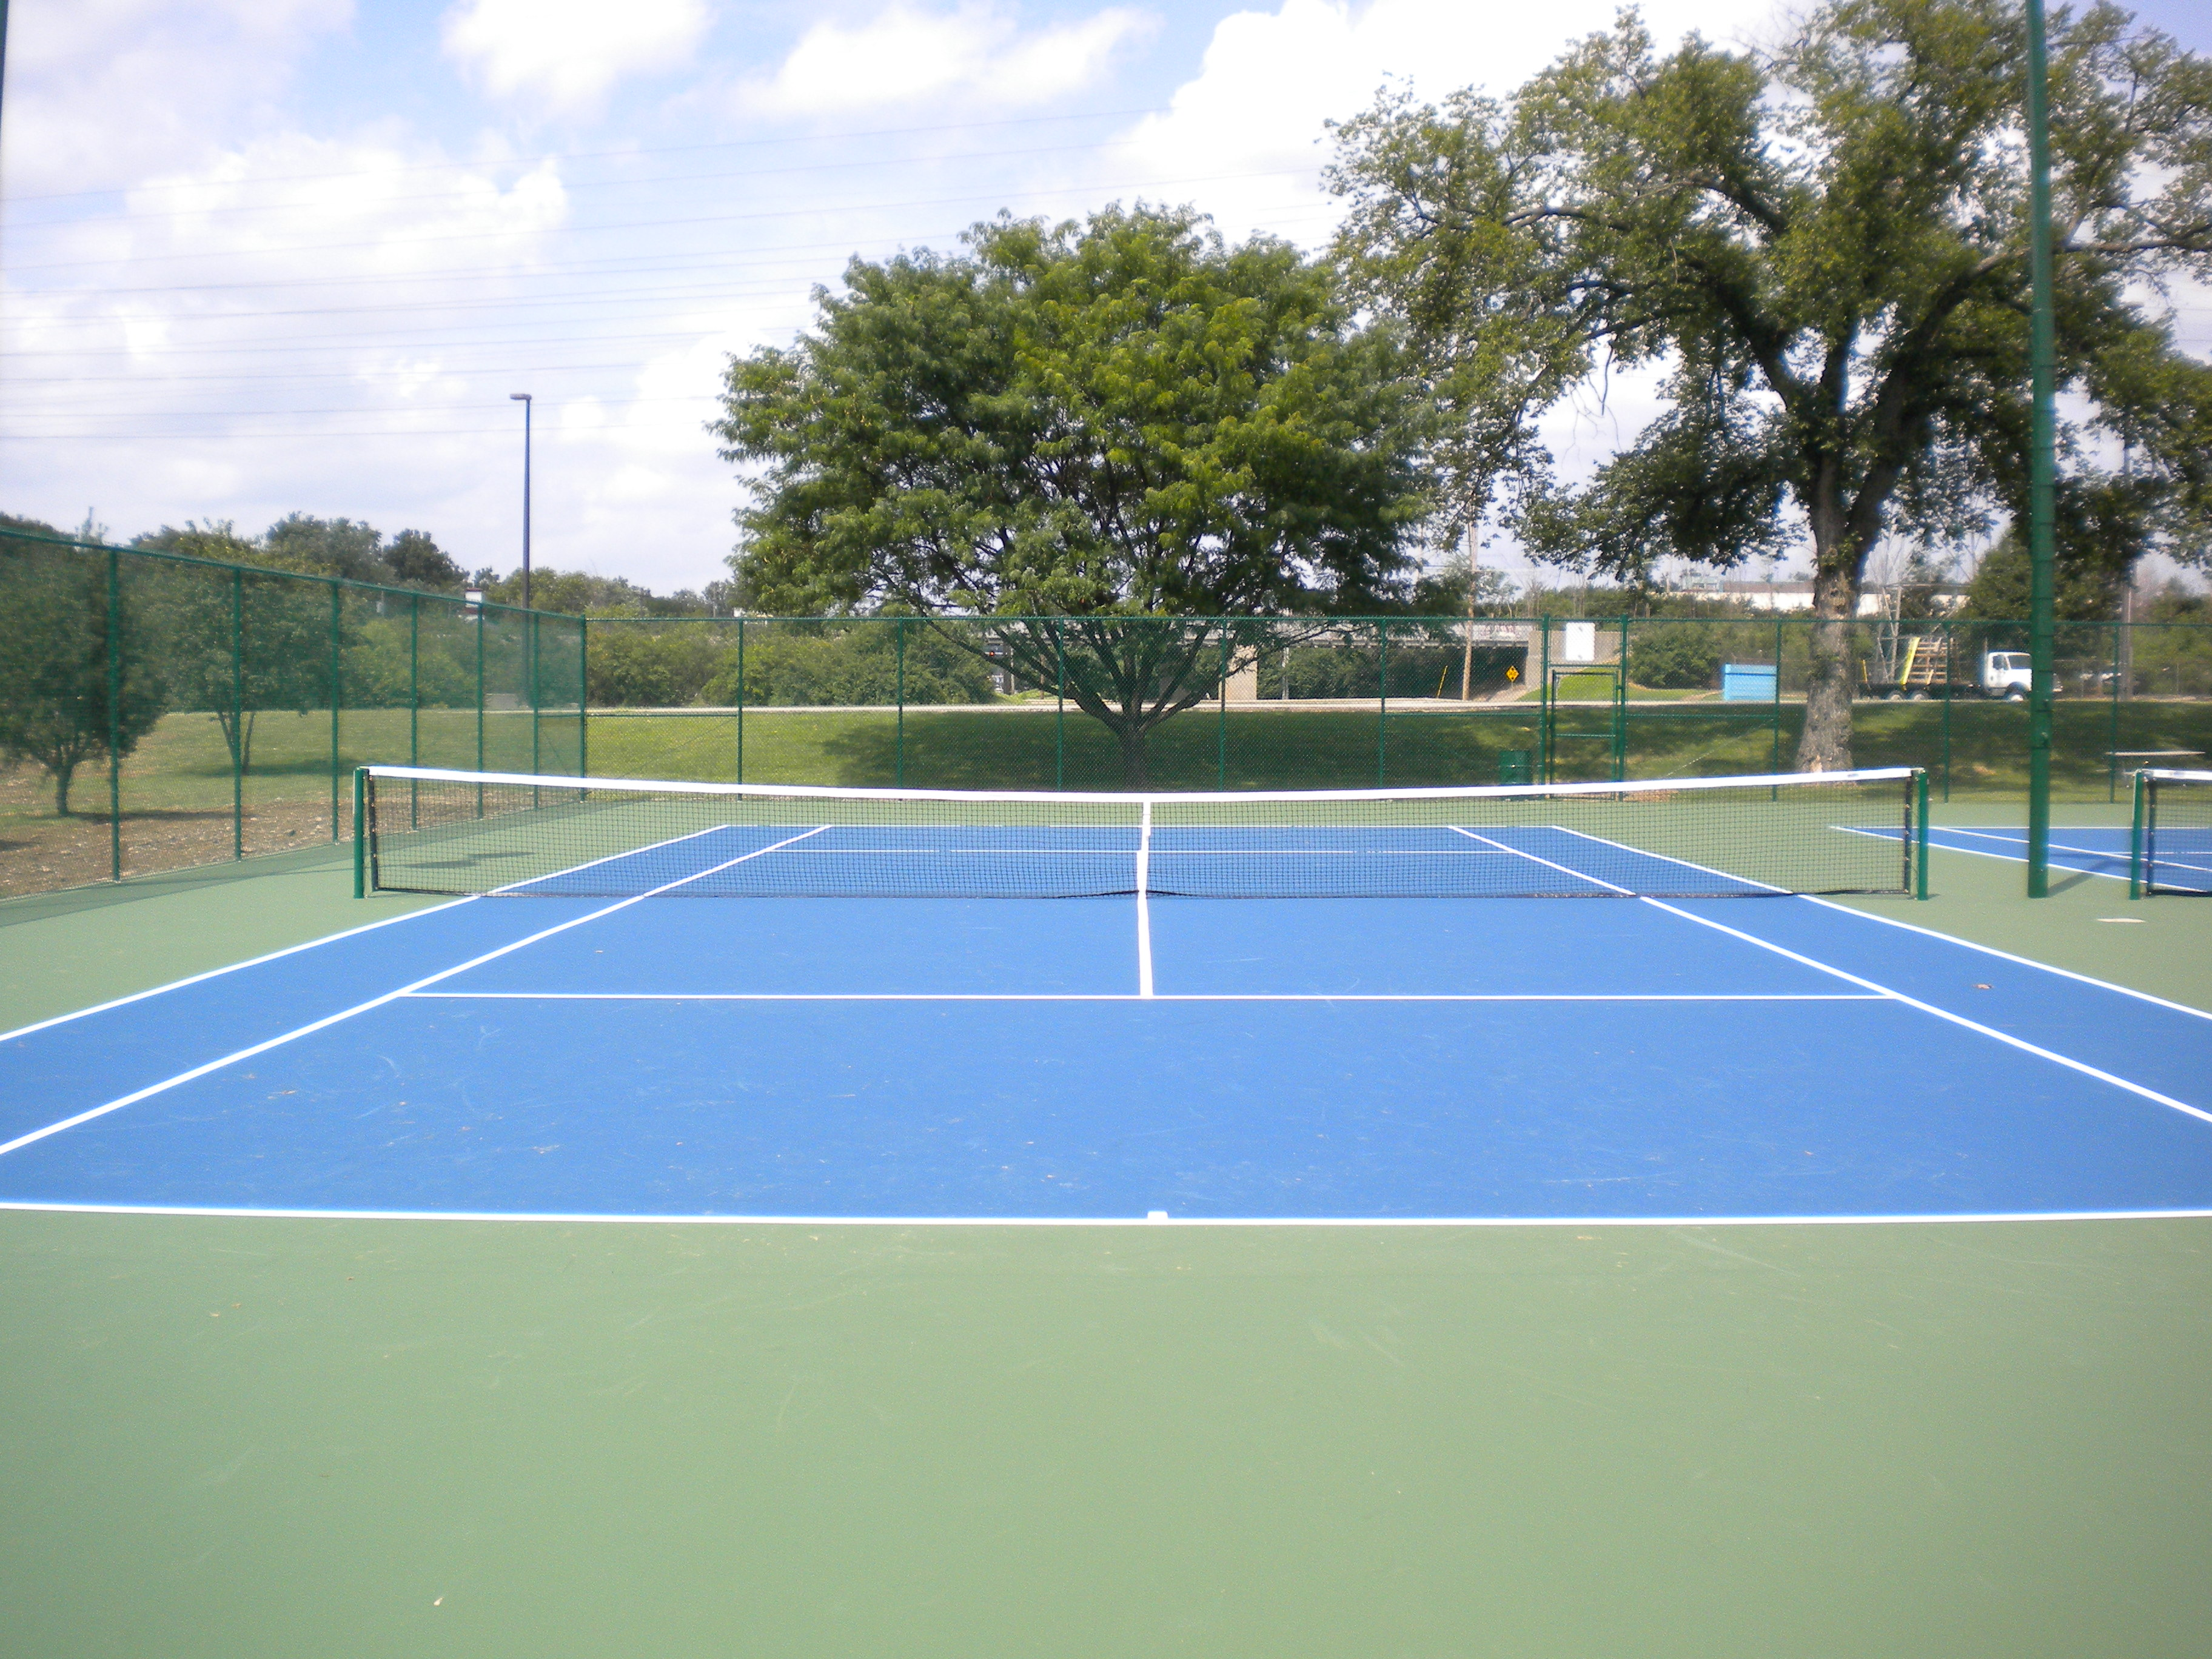 TENNIS COURT CONSTRUCTION & COST